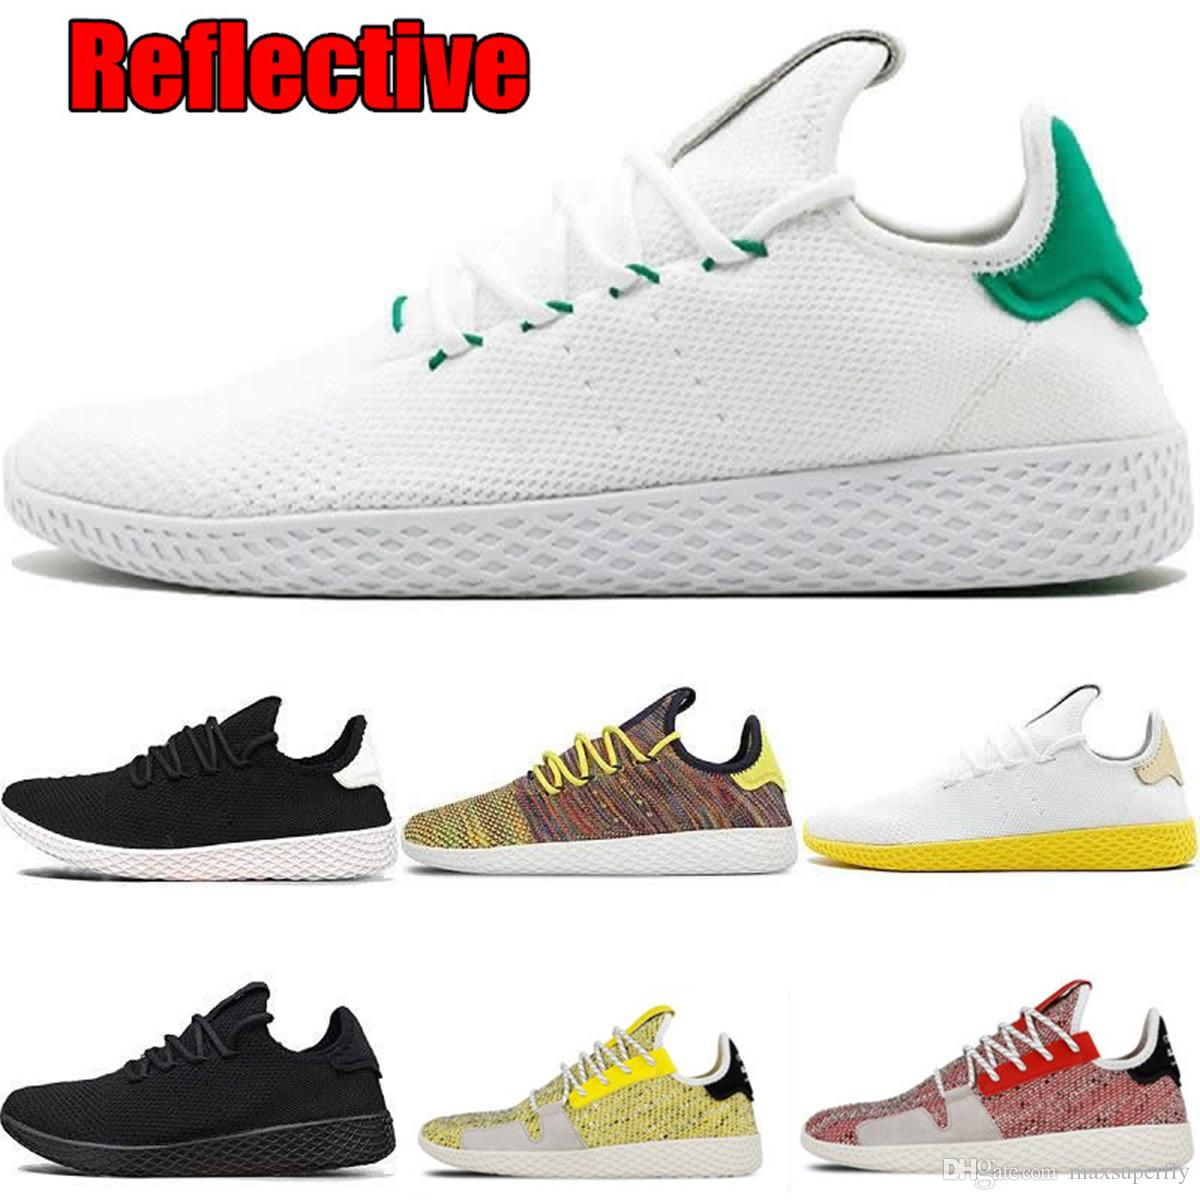 new concept 33d14 856b0 Summer Reflective Static PW Pharrell Williams X Stan Smith Tennis Hu  Primeknit Upper Men Women Breathable Jogging Running Shoes EUR 36 45 Trail Shoes  Shoes ...